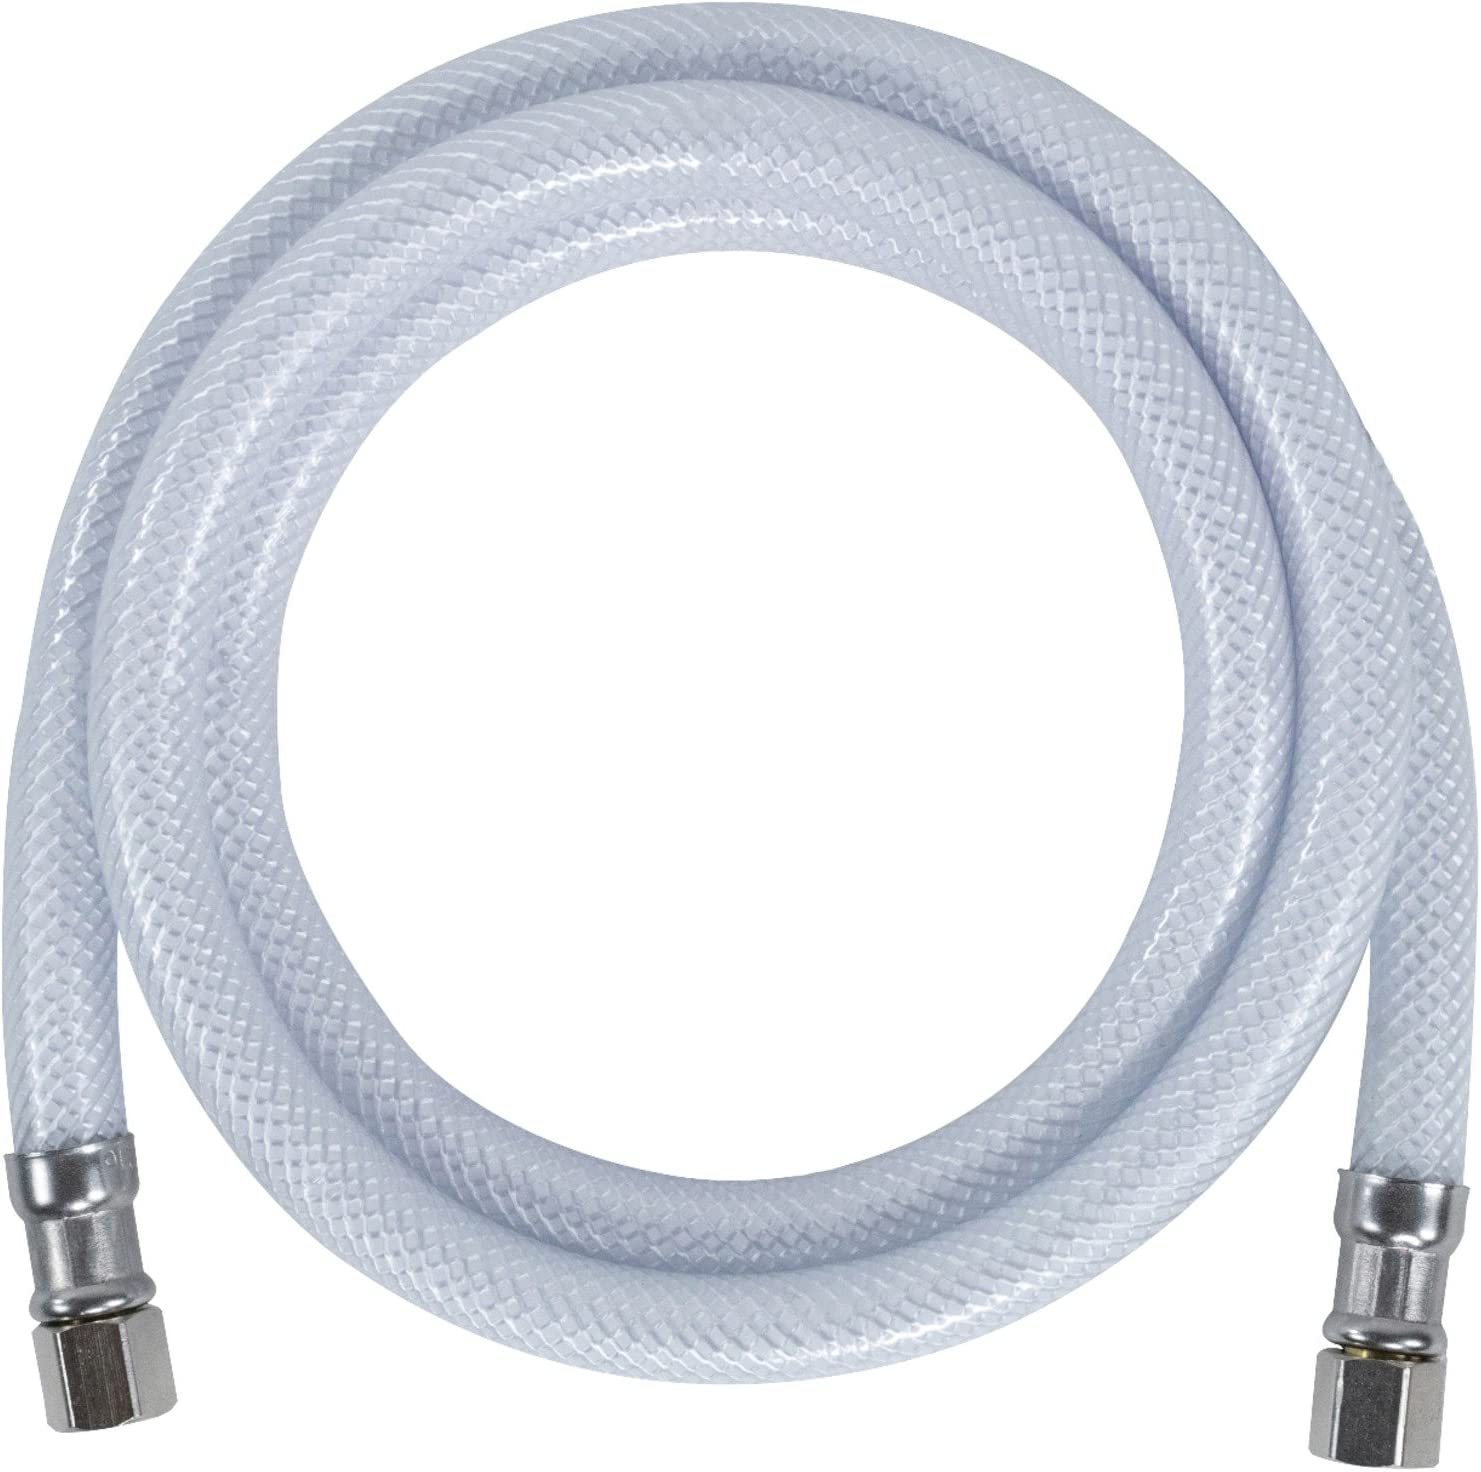 Certified Appliance Accessories Ice Maker Water Line, 6 Feet, Polyester-Reinforced PVC, White in Protective Clamshell Packaging